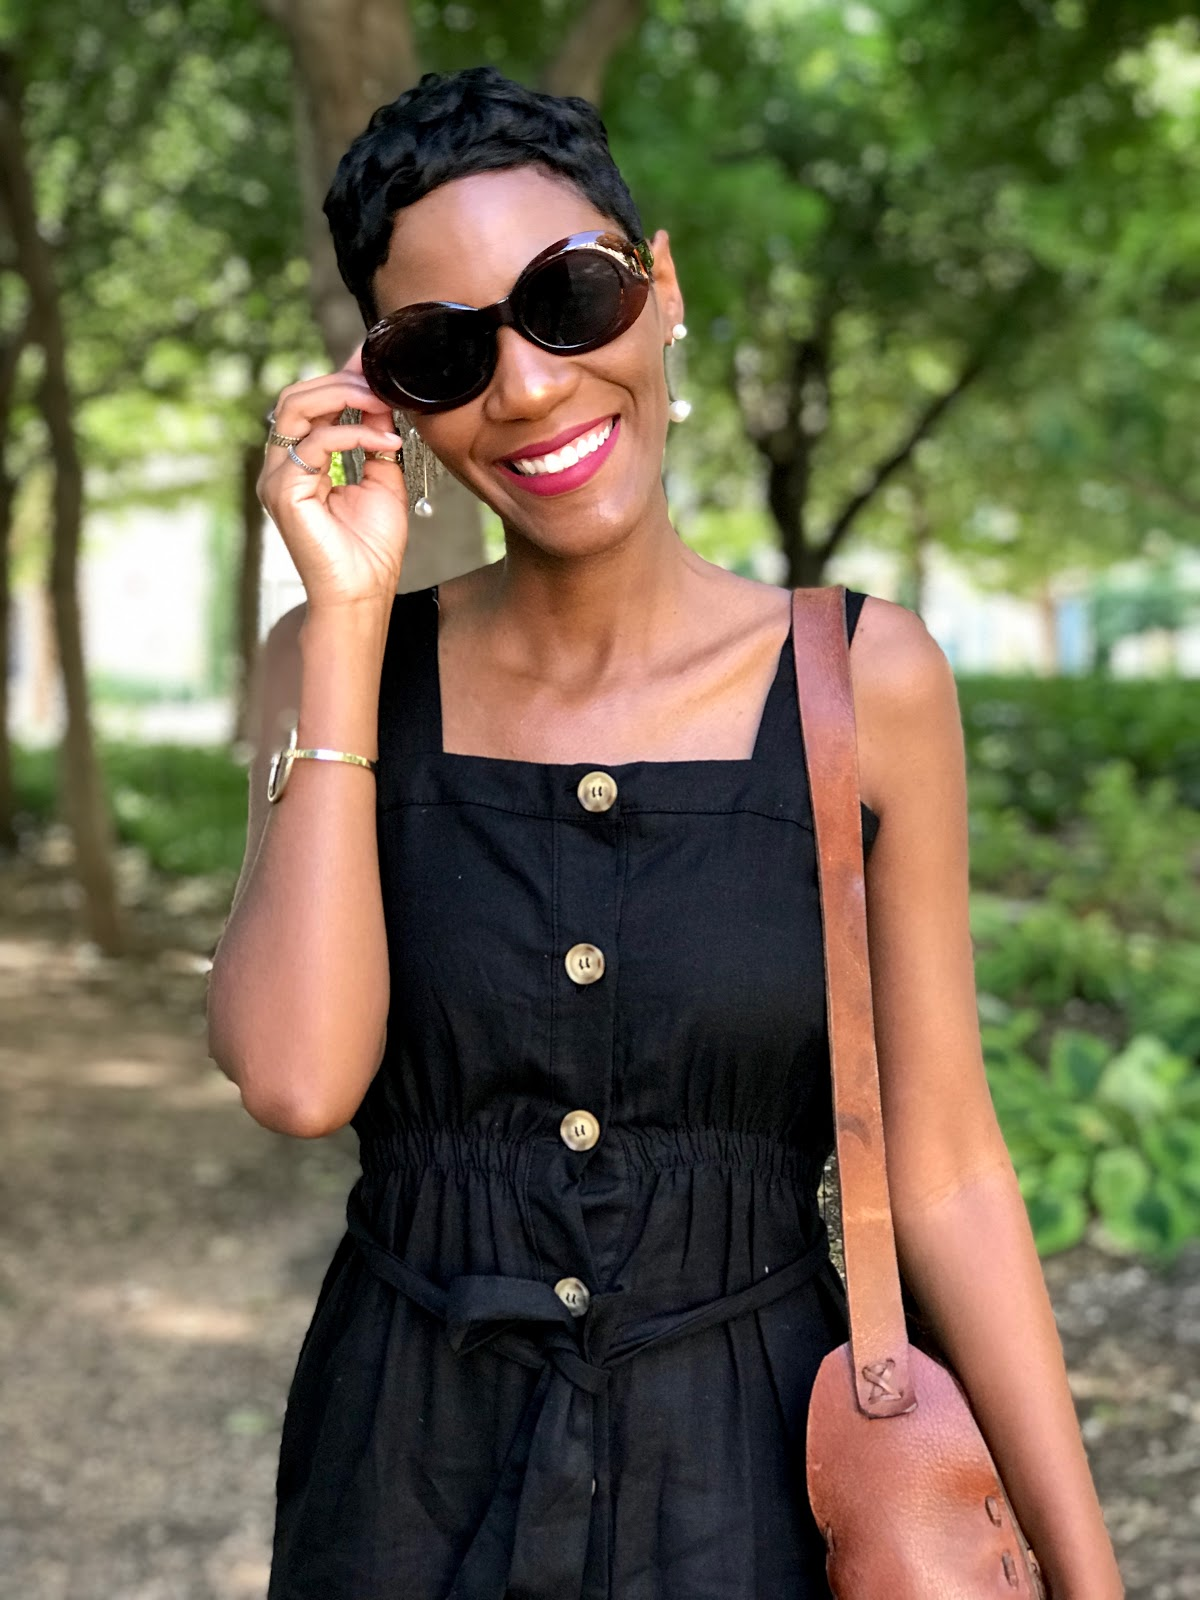 Quick OOTD: I Am SOOOOO Obsessed With This Little Black Dress + Other New Accessories!